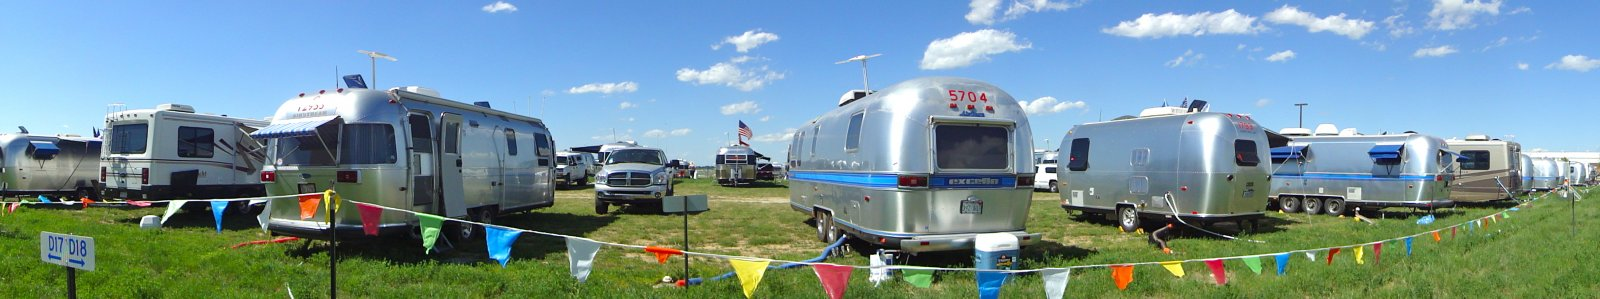 Click image for larger version  Name:Hot Wyoming morning.jpg Views:85 Size:109.4 KB ID:106186